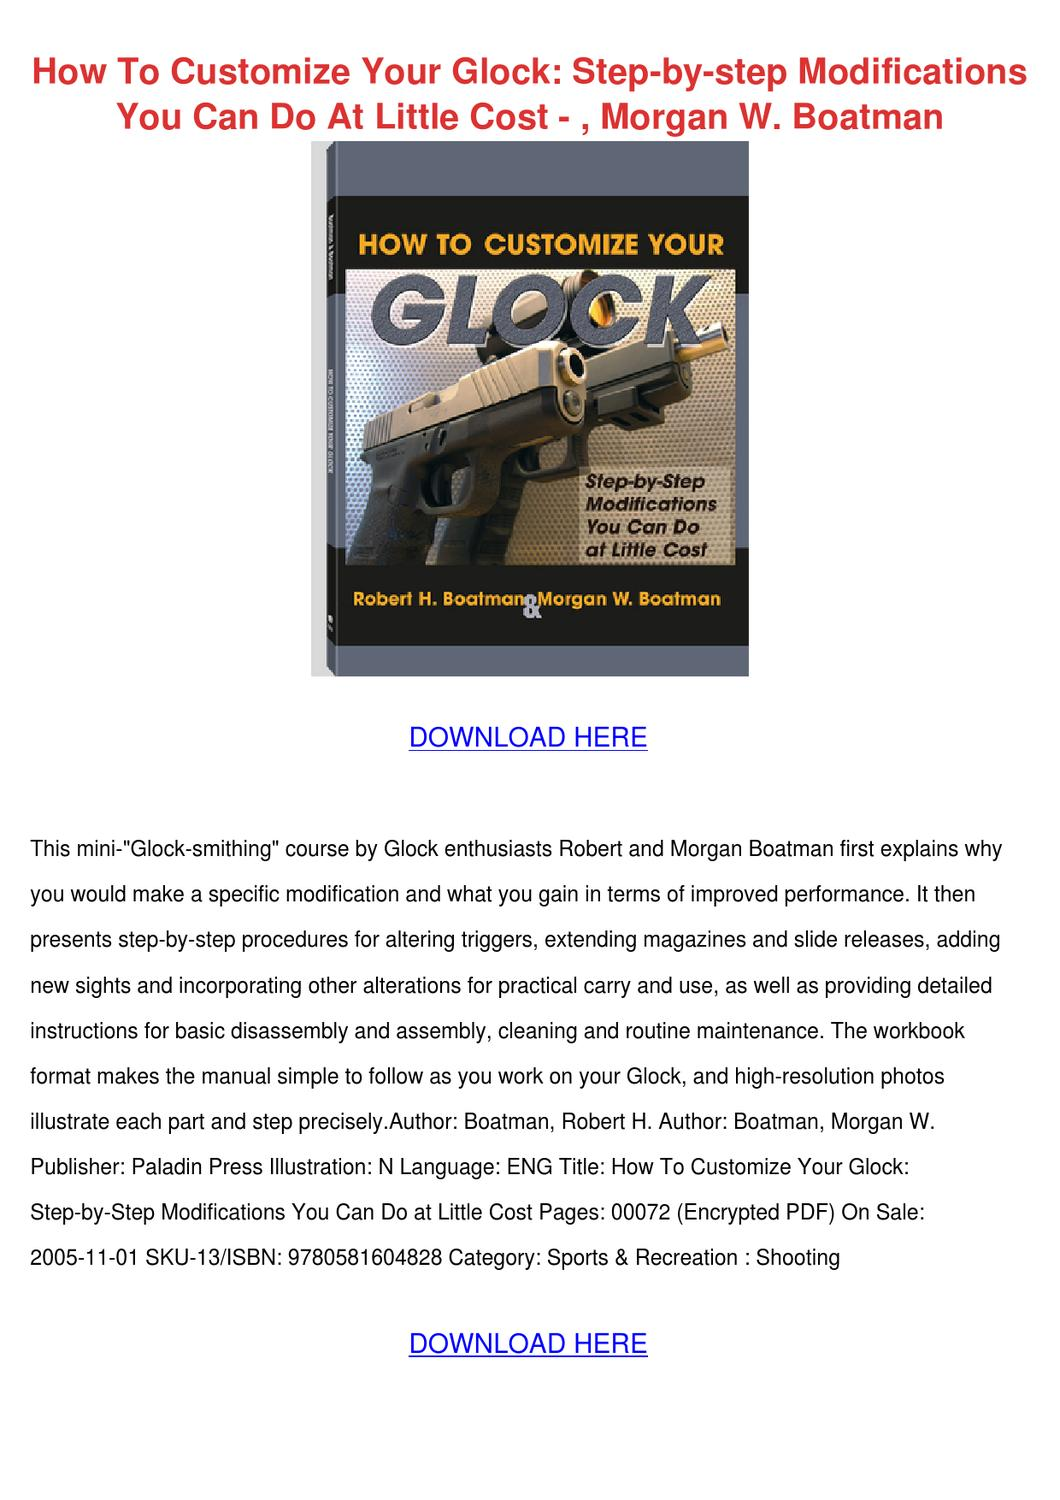 How To Customize Your Glock Step By Modi Raymond Mcguinness Wiring Diagram Workbook Pdf Using The Lexus Electrical Issuu